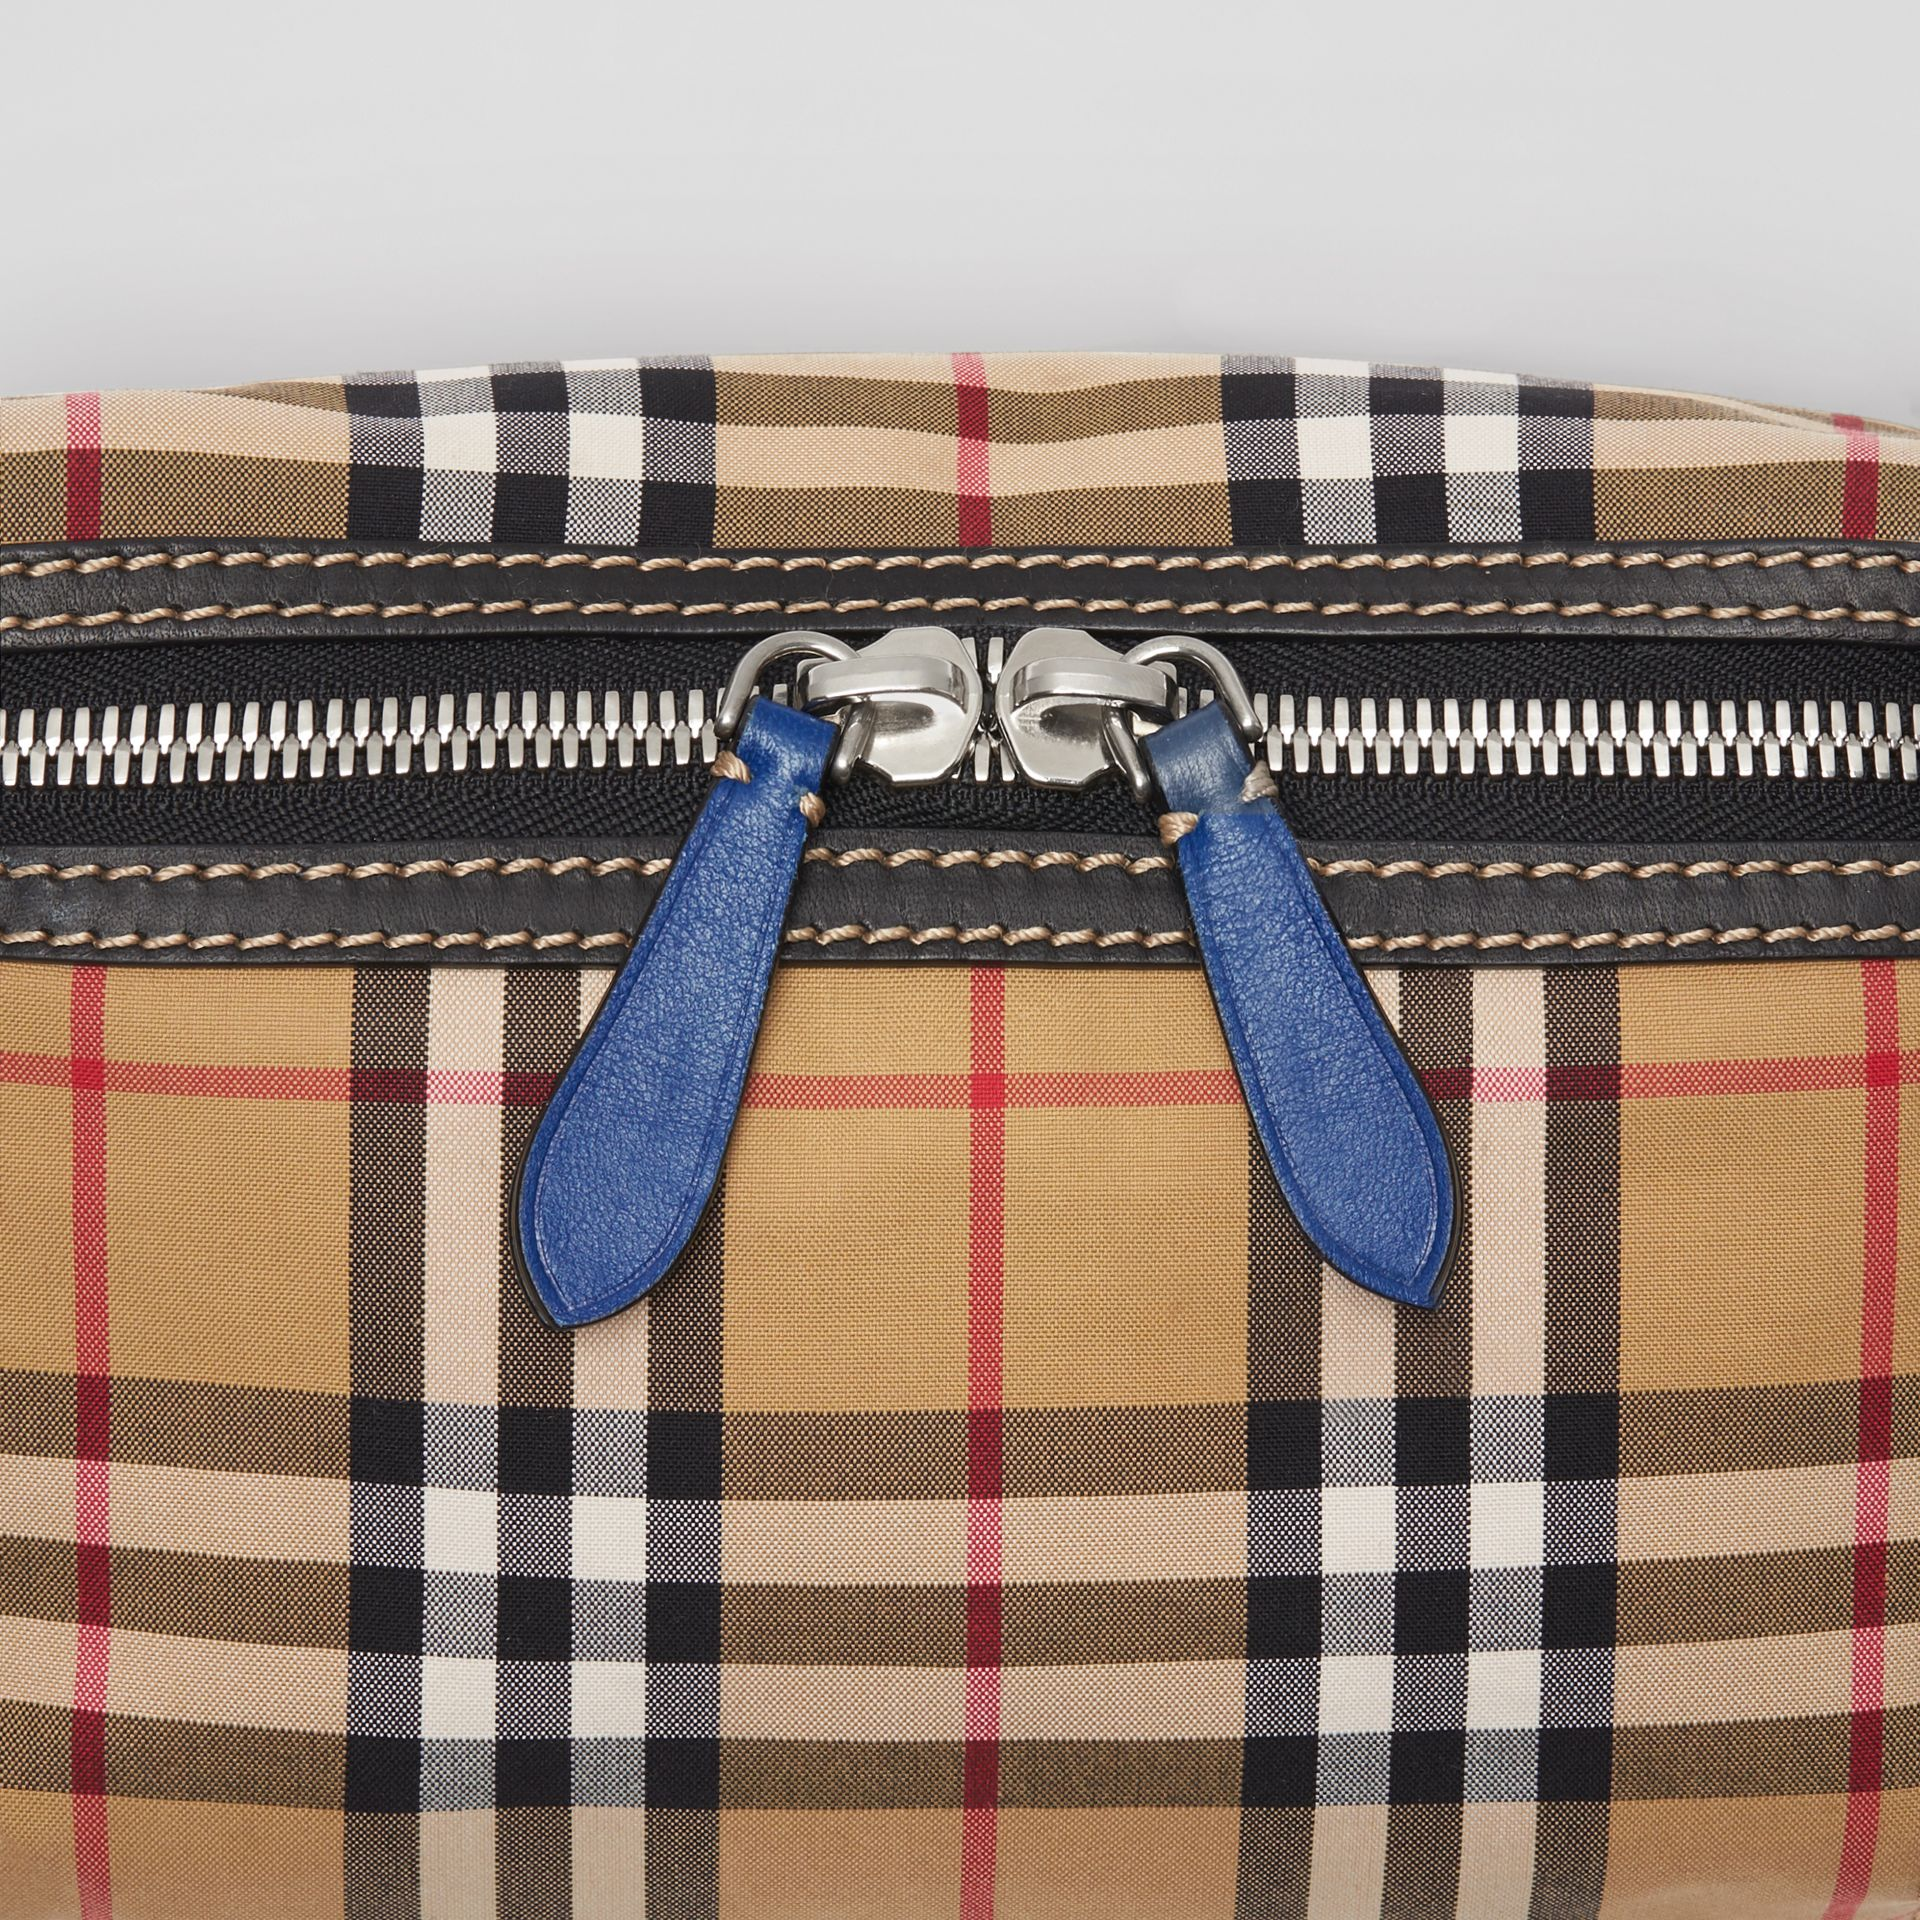 Medium Vintage Check Bum Bag in Canvas Blue - Men | Burberry Australia - gallery image 1